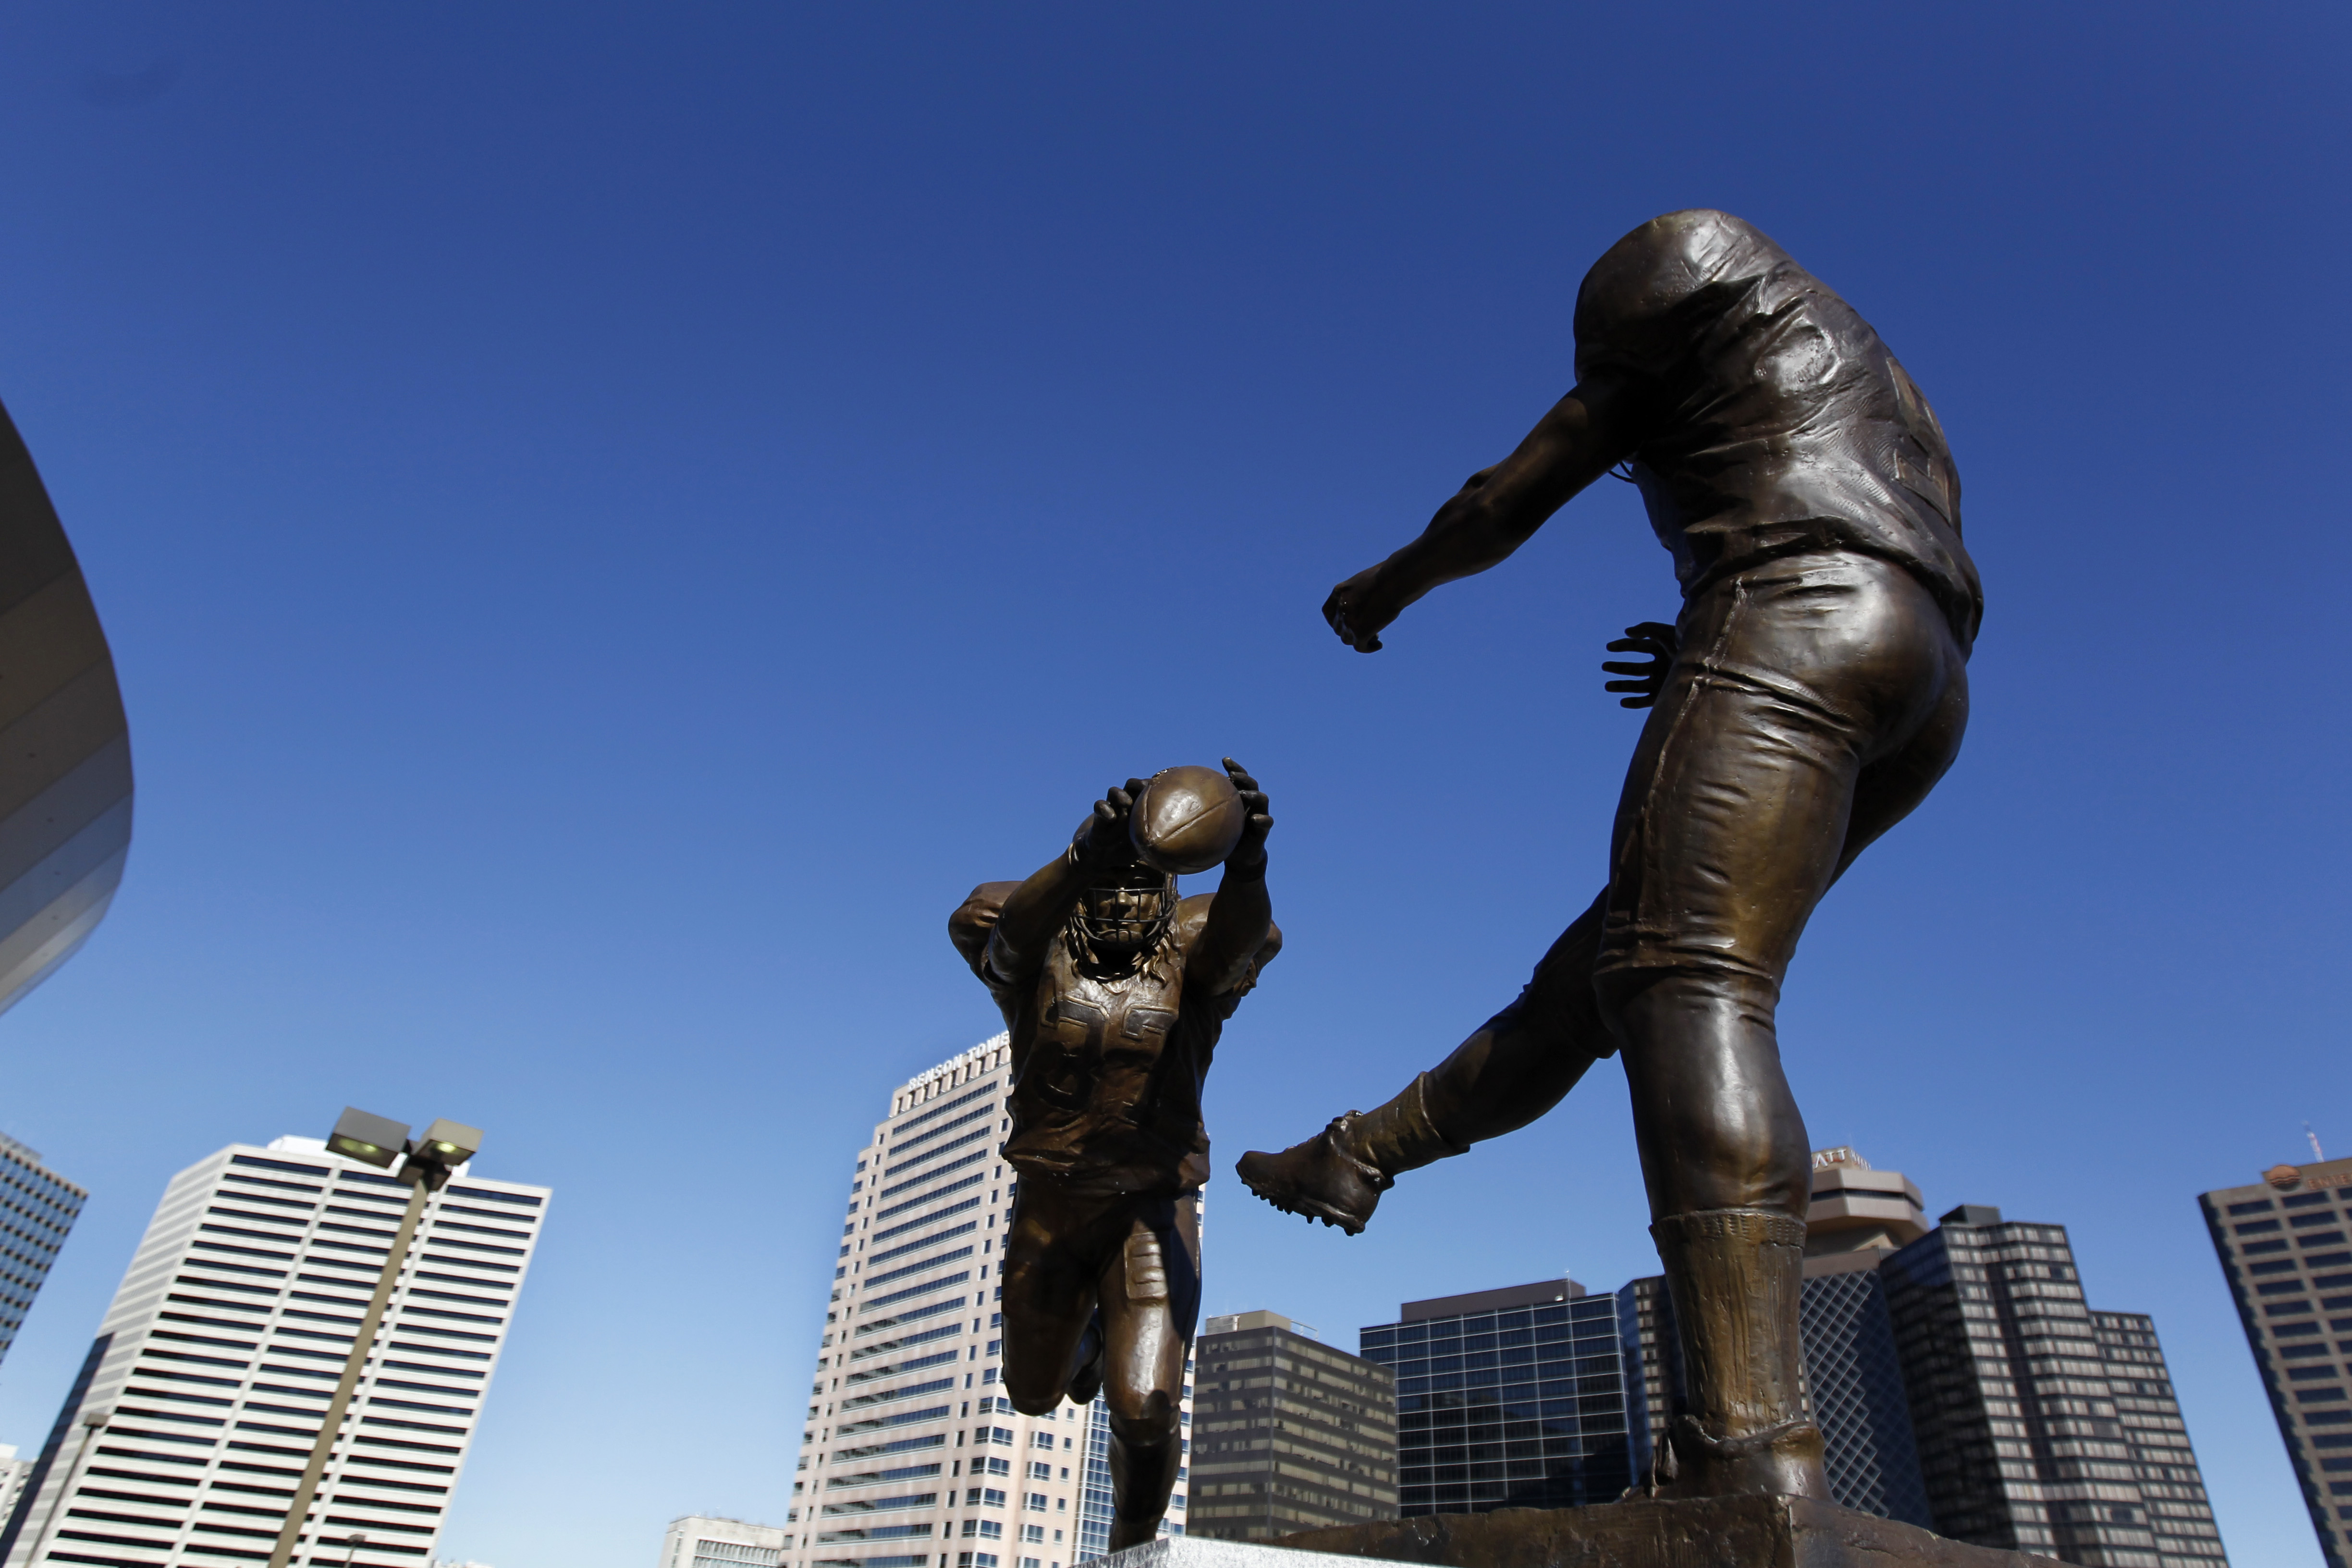 The bronze statue titled 'Rebirth,' which shows former New Orleans Saint Steve Gleason blocking a punt against the Atlanta Falcons during the first Monday Night Football game after the Superdome re-opened after Hurricane Katrina, is seen, outside the Mercedes-Benz Superdomein New Orleans, Thursday, Nov. 8, 2012.